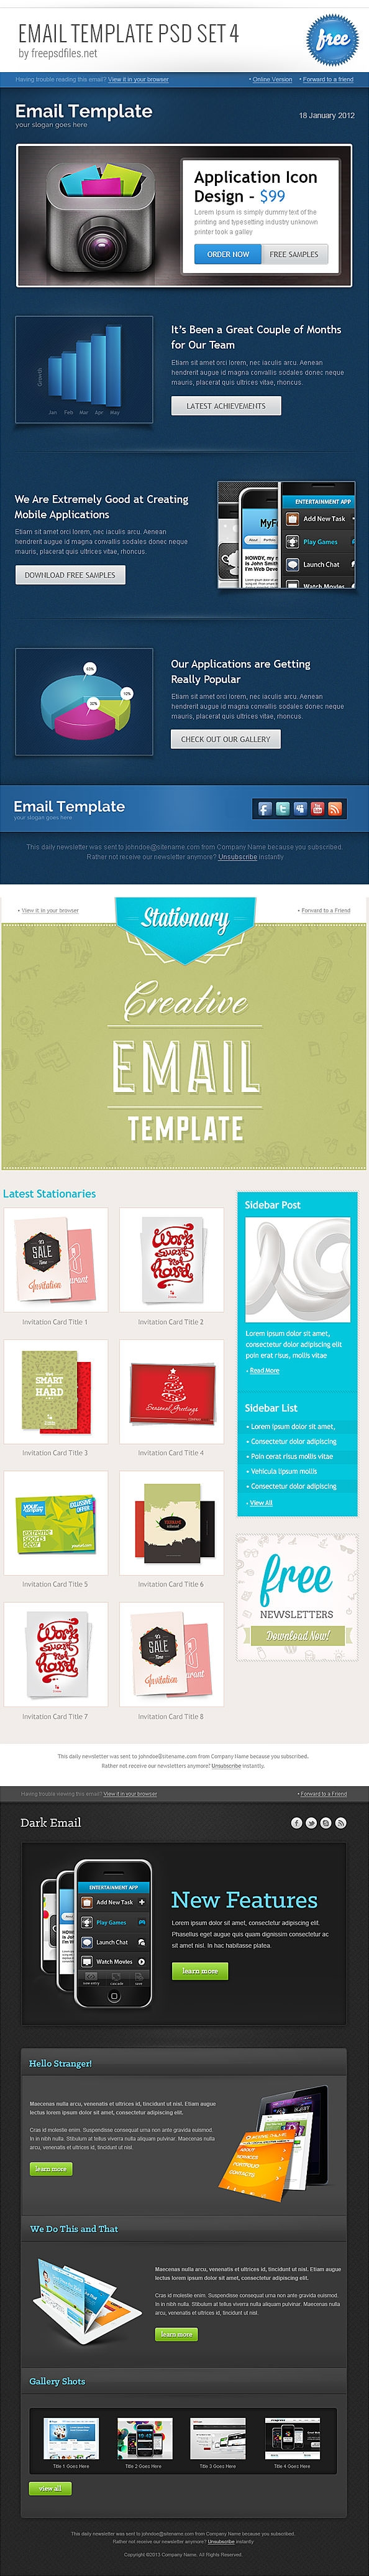 email-template-psd-set-4-